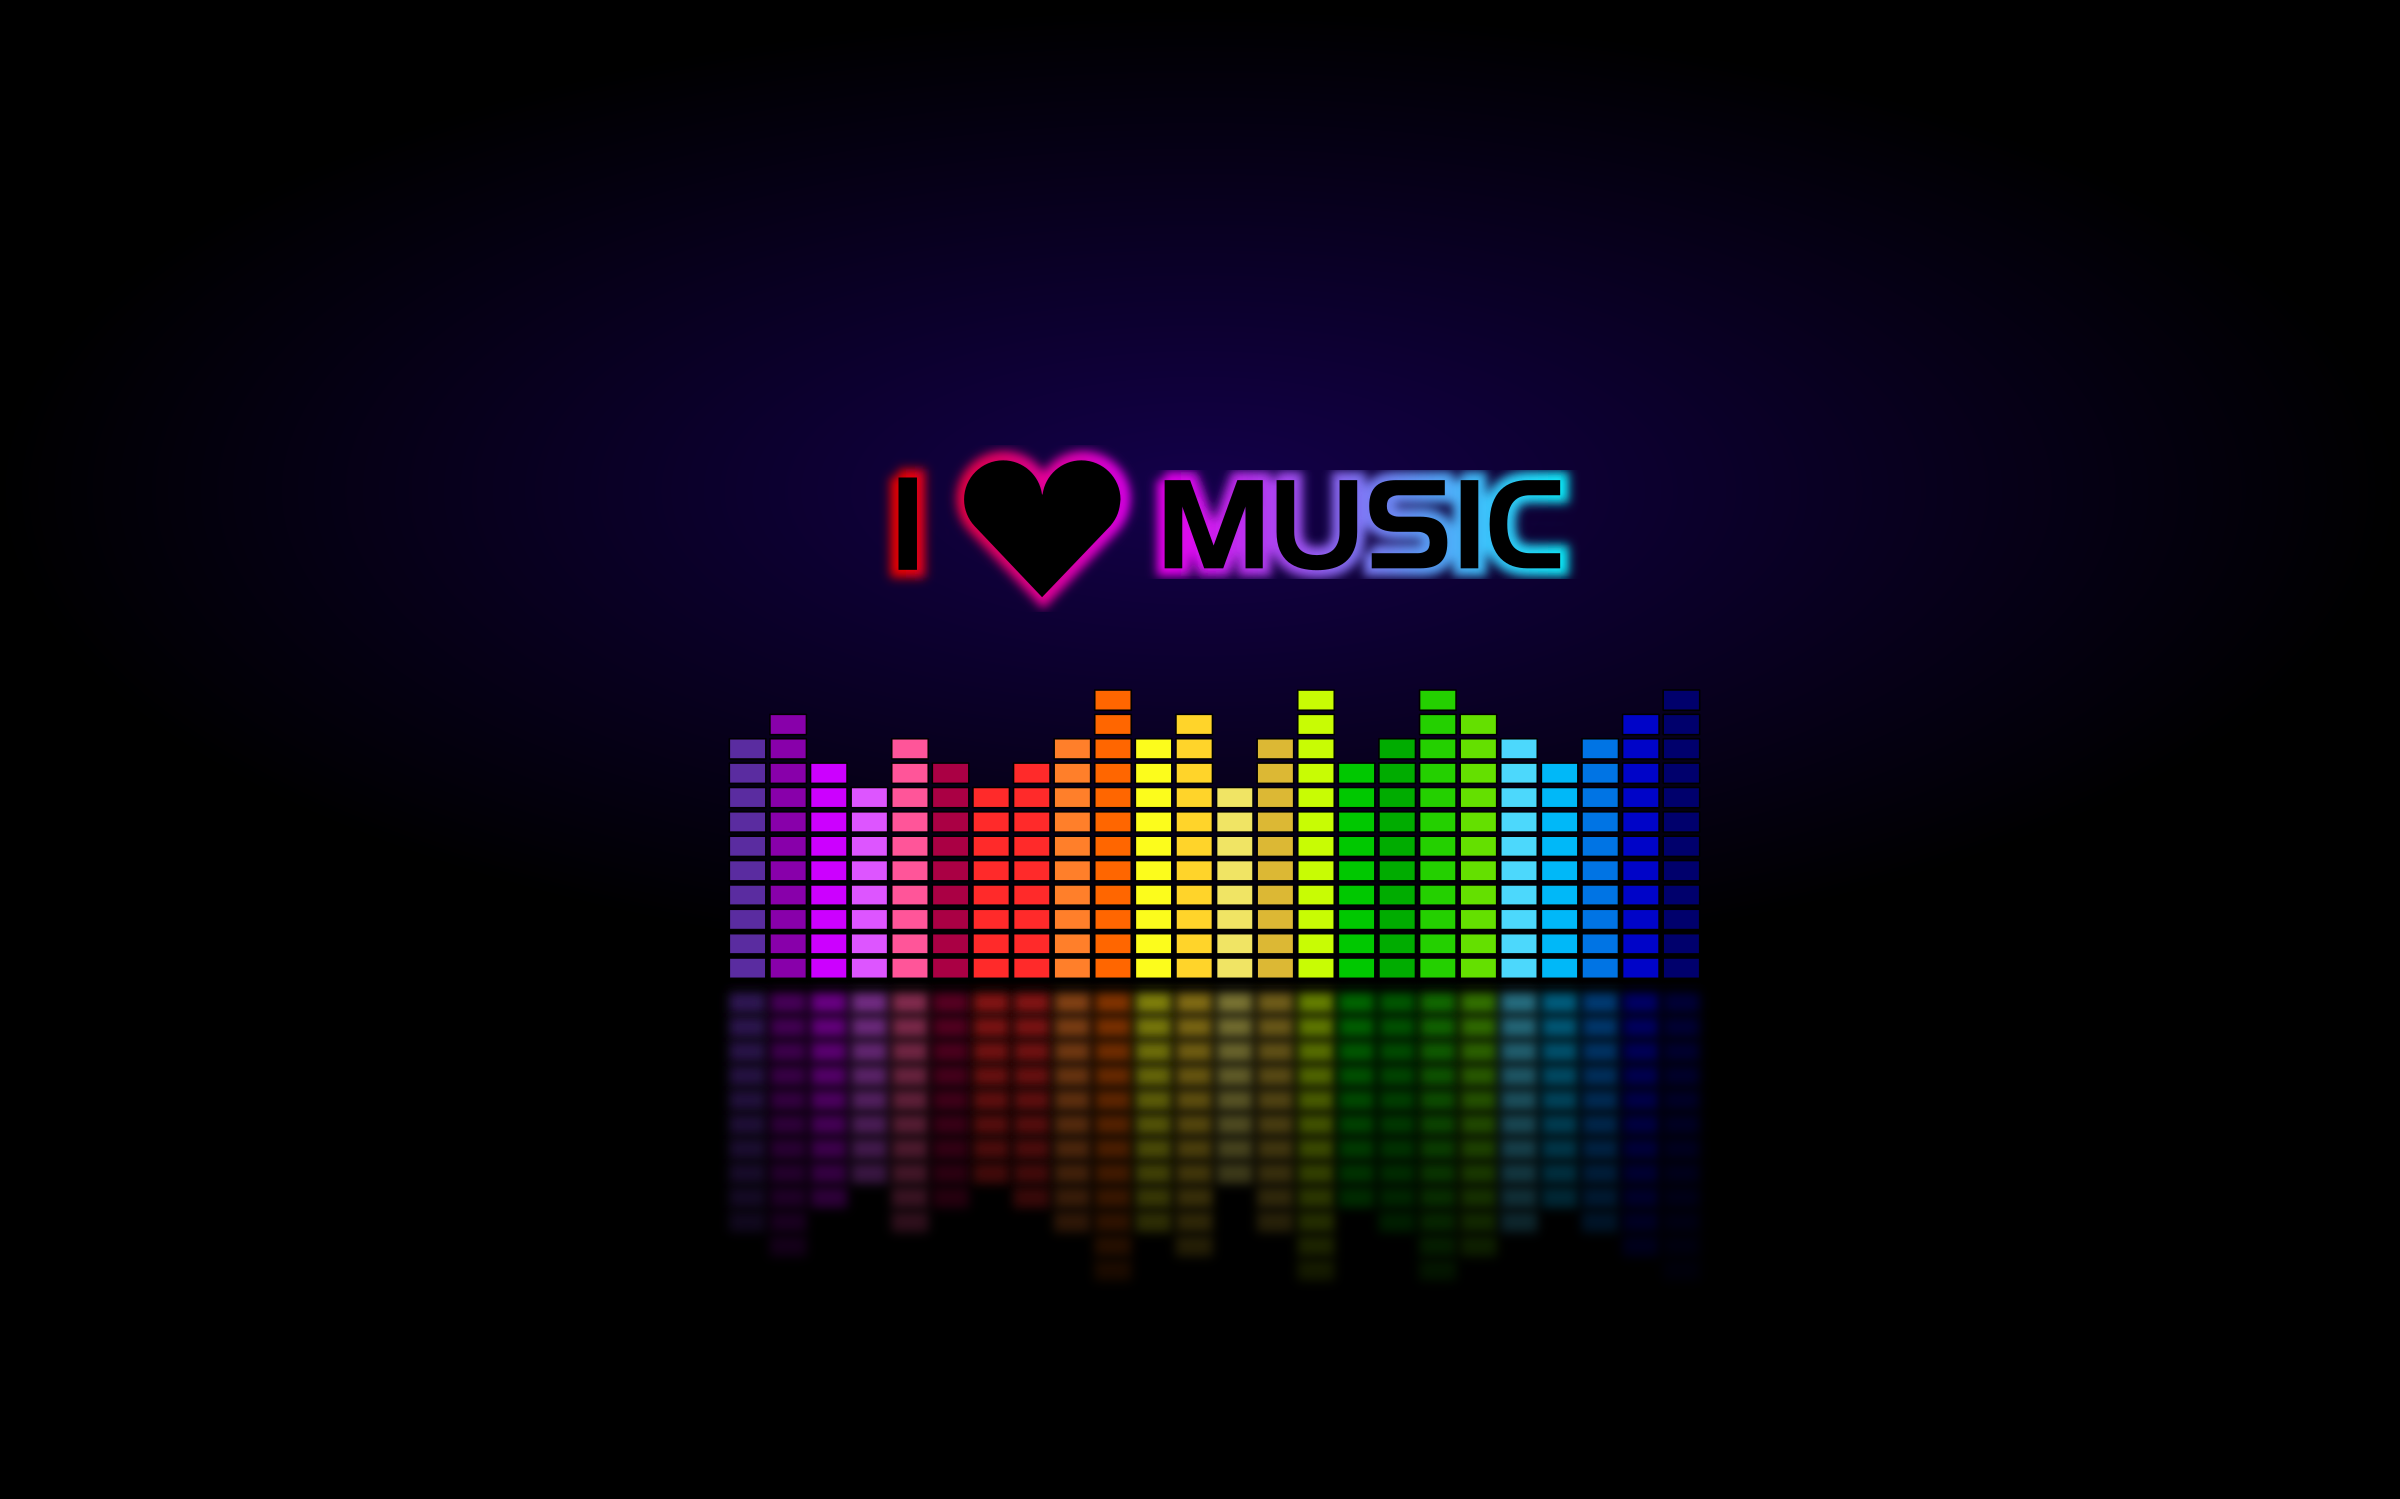 clipart - I LOVE MUSIc (Wallpaper)